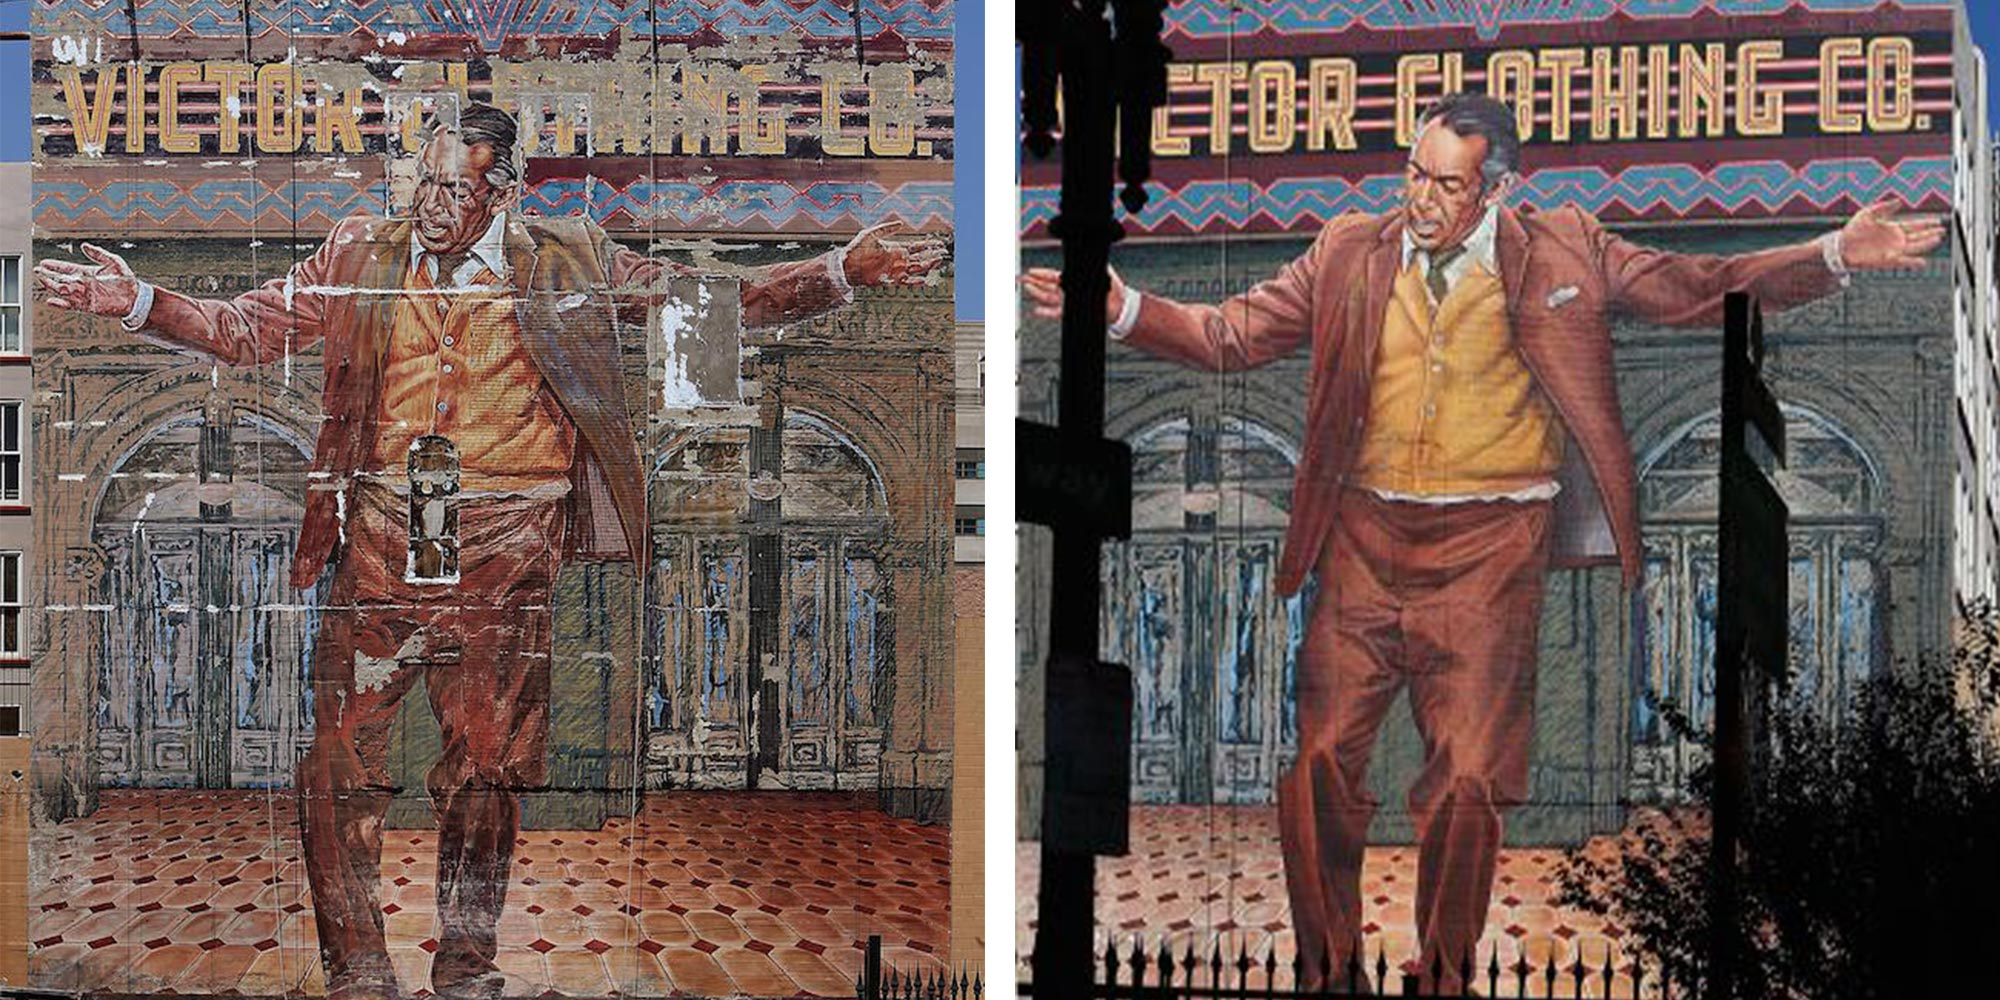 Historic mural was refurbished by the original artist